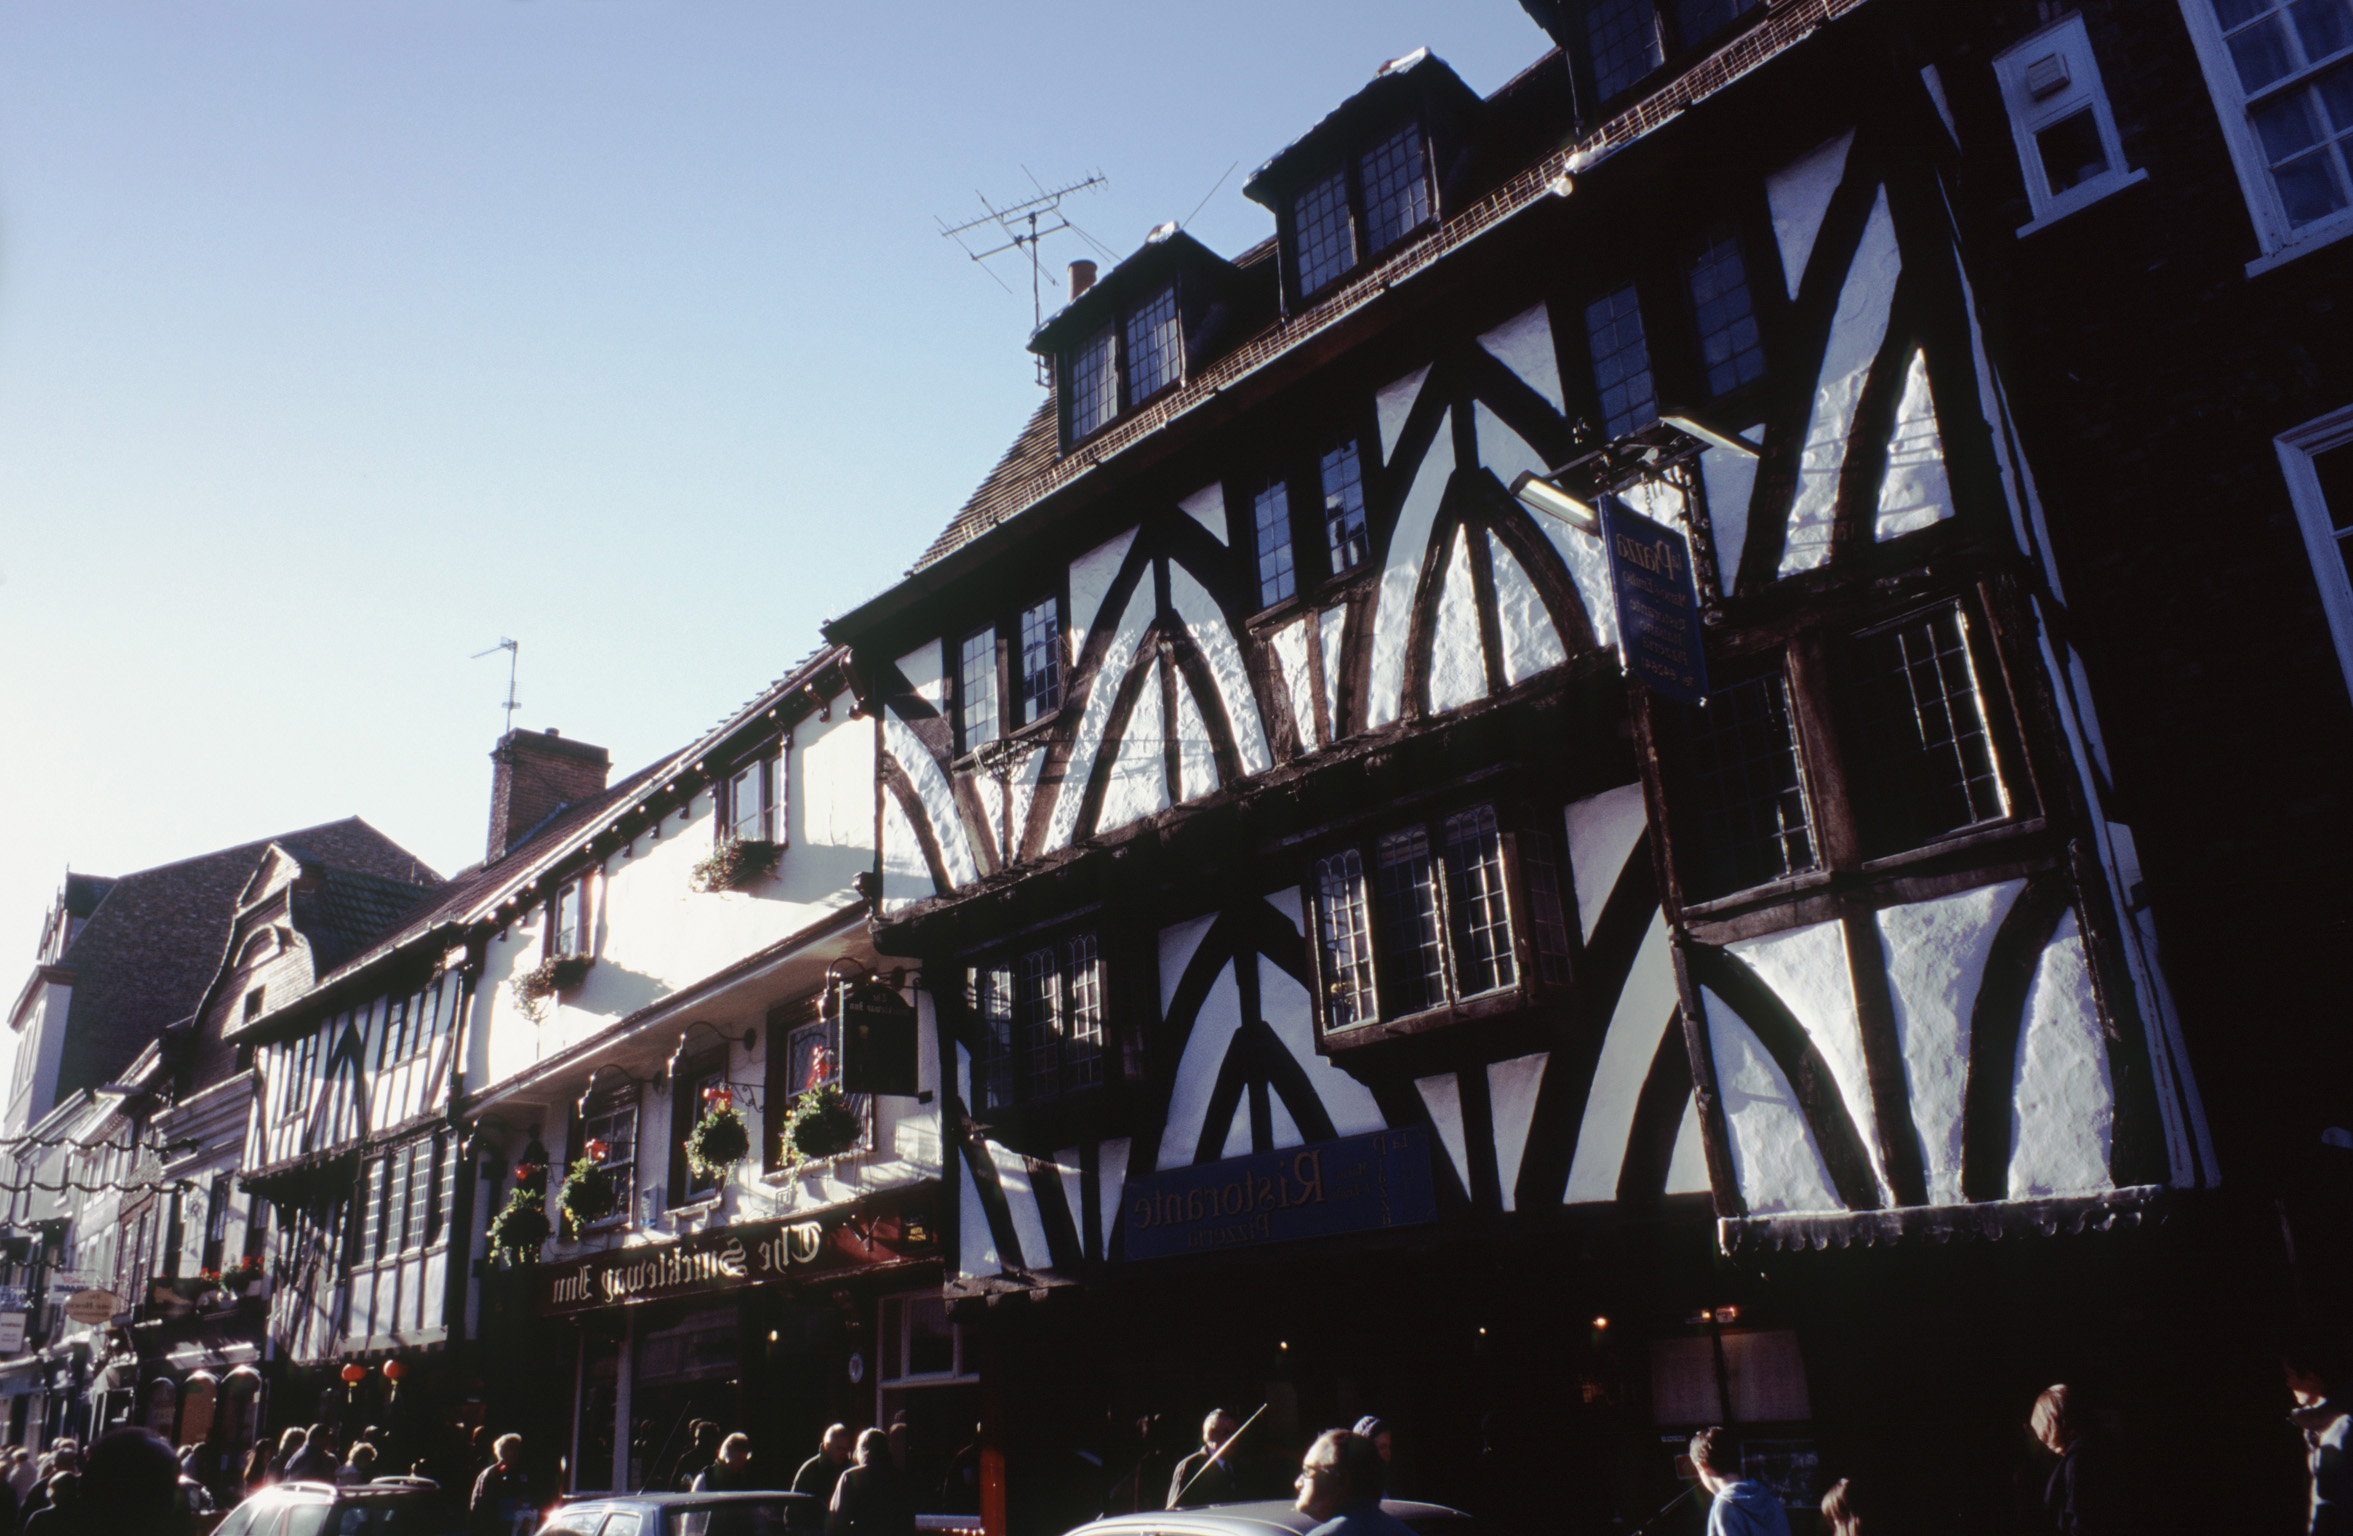 Traditional historical Tudor timber framed houses in York with overhanging bay windows in an architectural and travel background